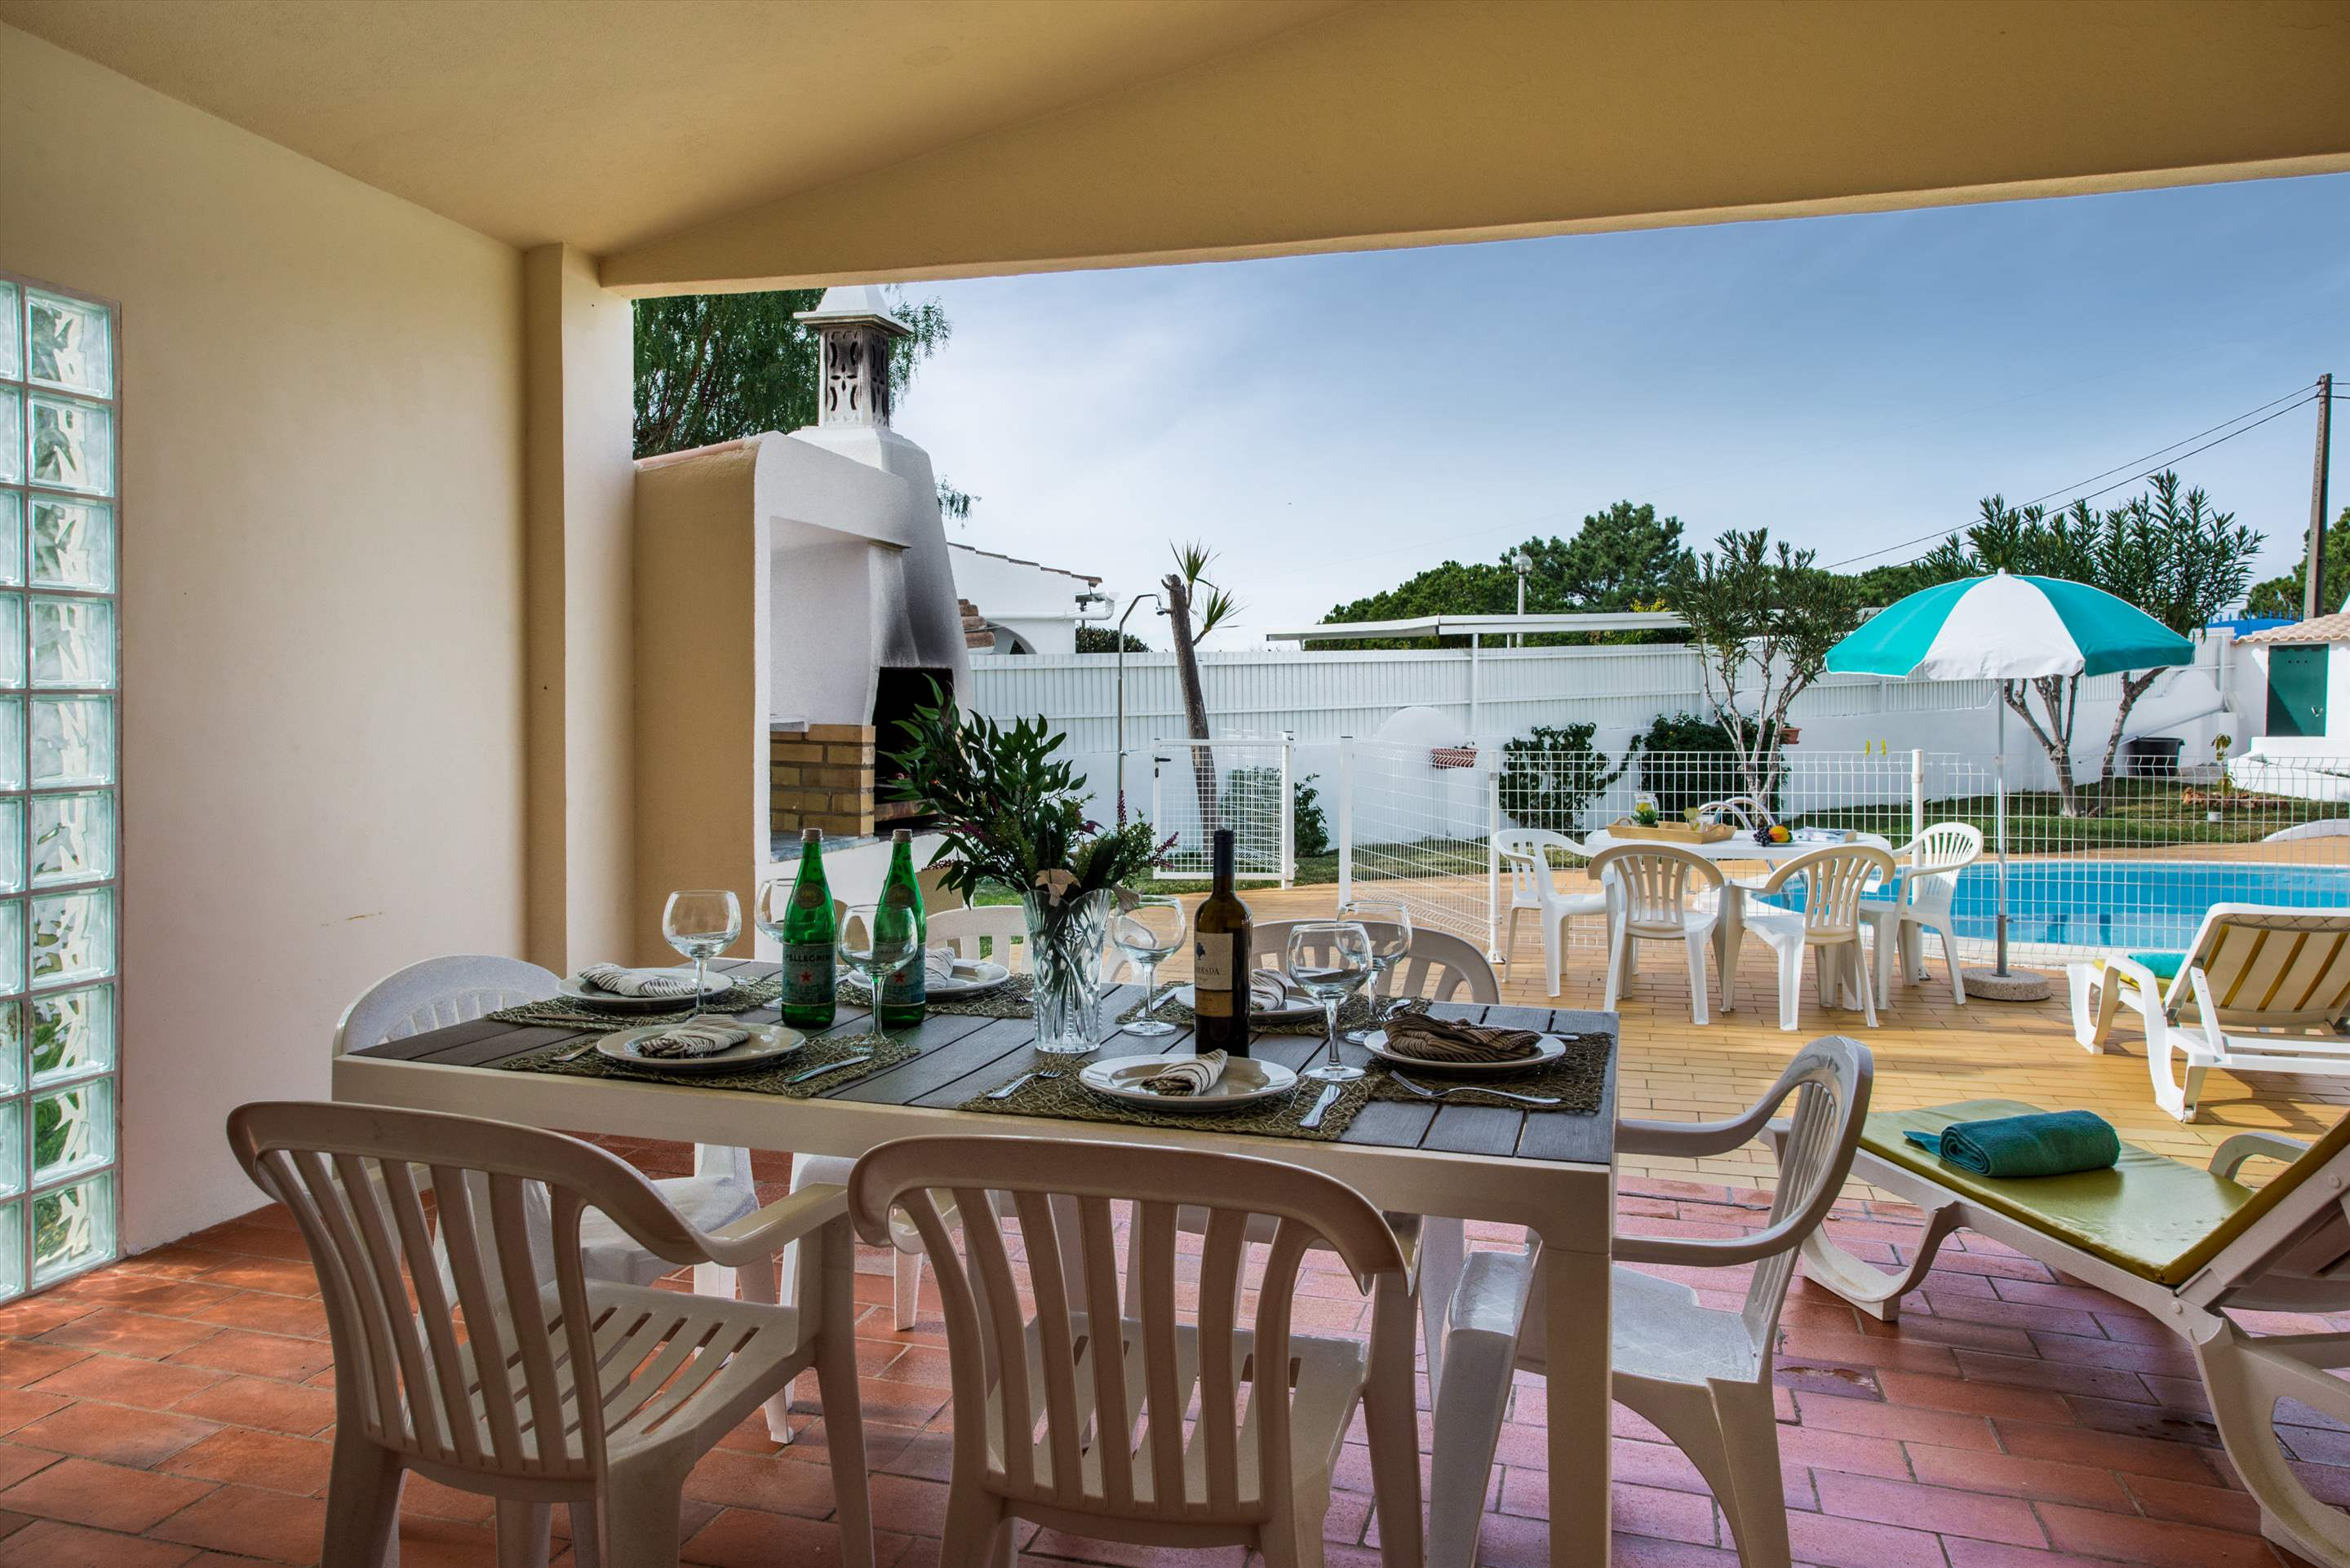 Casa Isabel, 5-6 persons rate, 3 bedroom villa in Gale, Vale da Parra and Guia, Algarve Photo #2